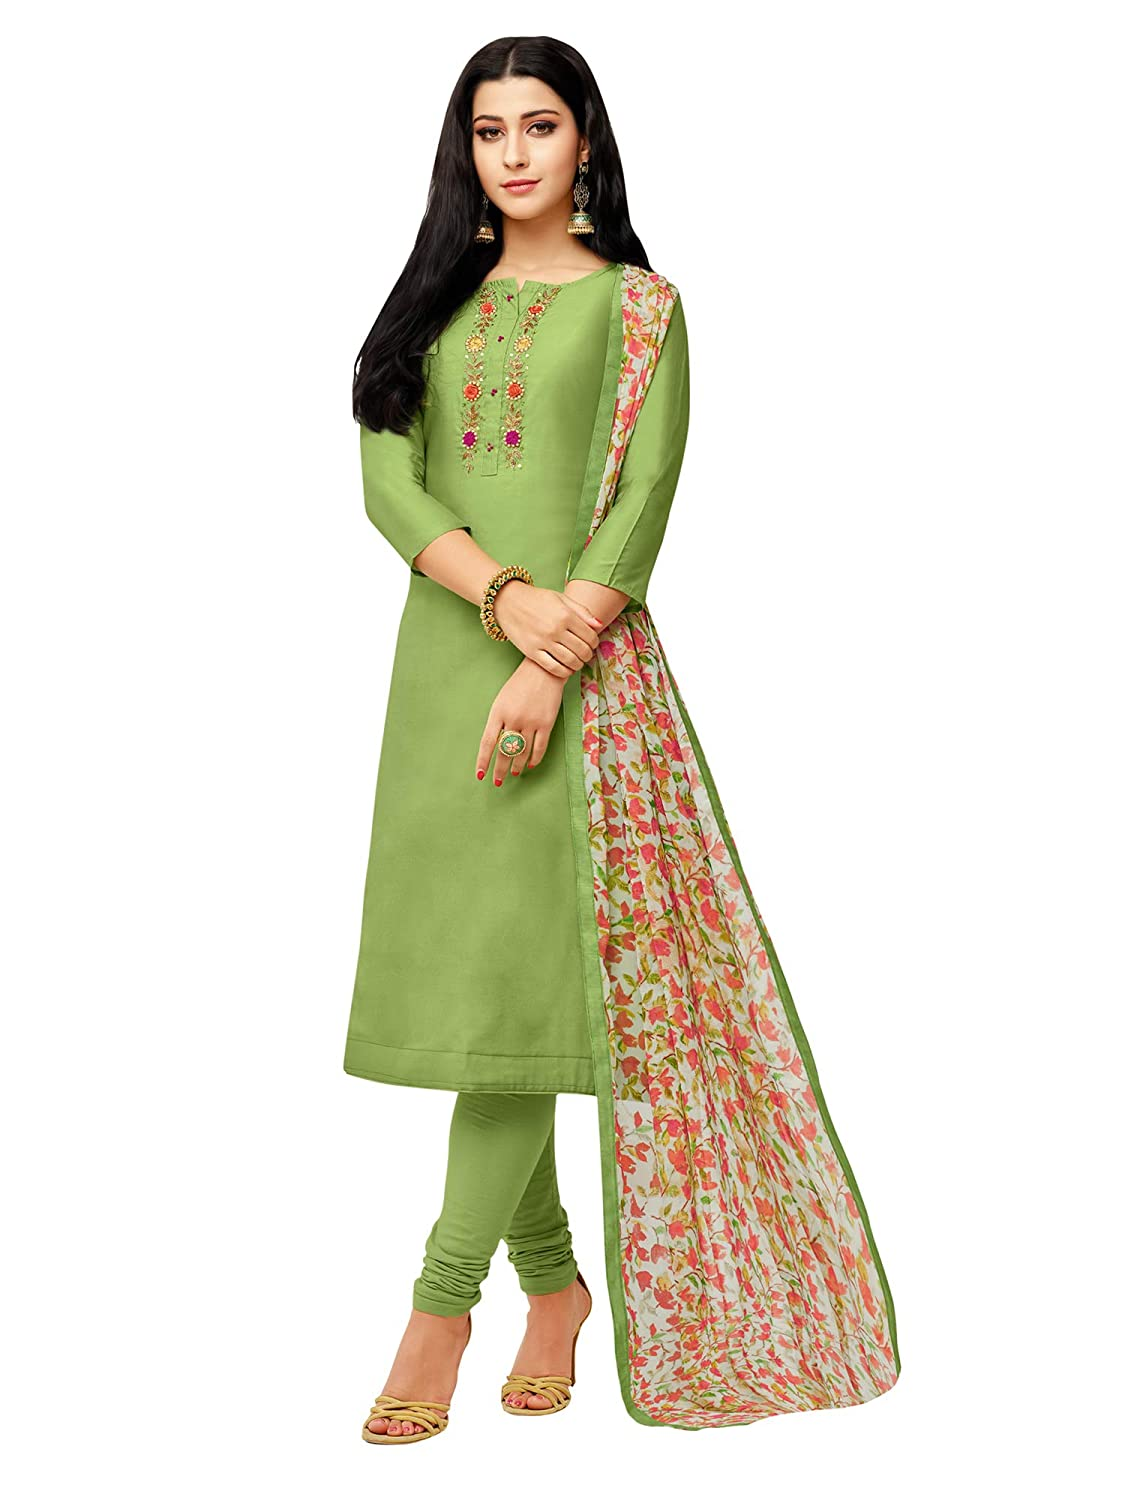 AKHILAM Women's Embroidered Chanderi Cotton Semi-Stitched Chudidar Salwar Suit Dress Material with Chiffon Dupatta (Green_Free Size)